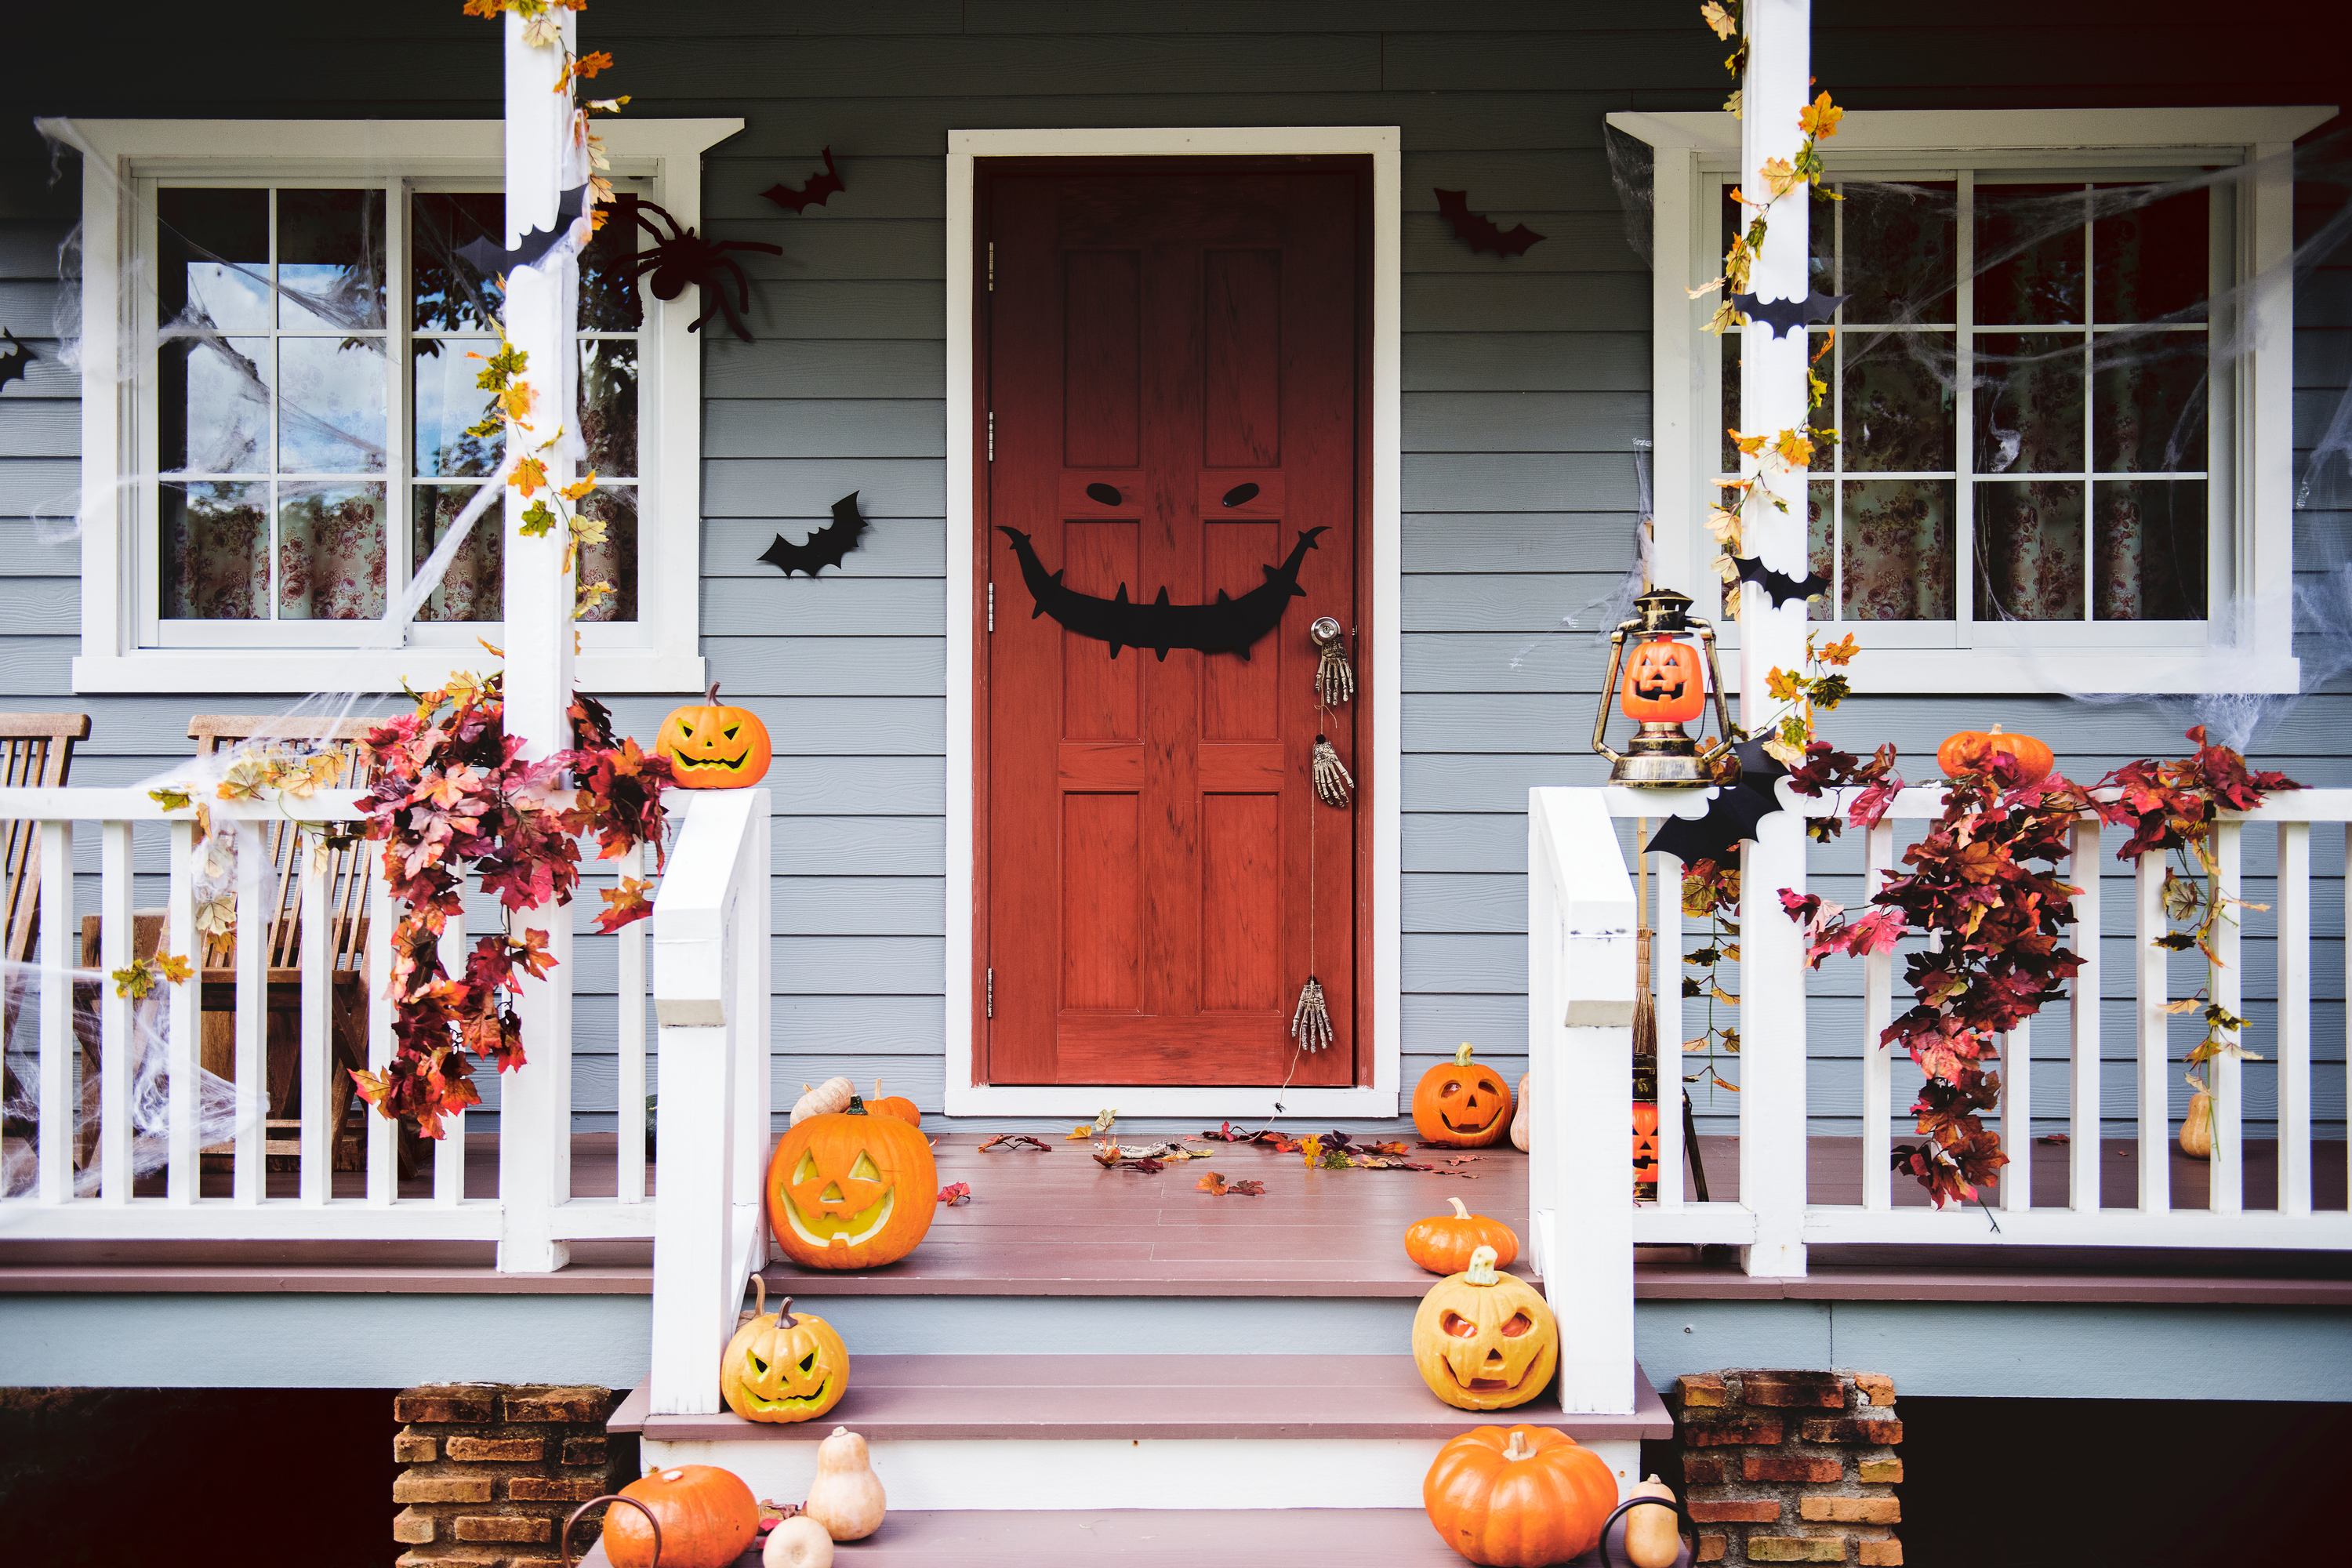 Halloween porch | Halloween porch decorating | porch | porch decor | Halloween | Halloween decor | fall